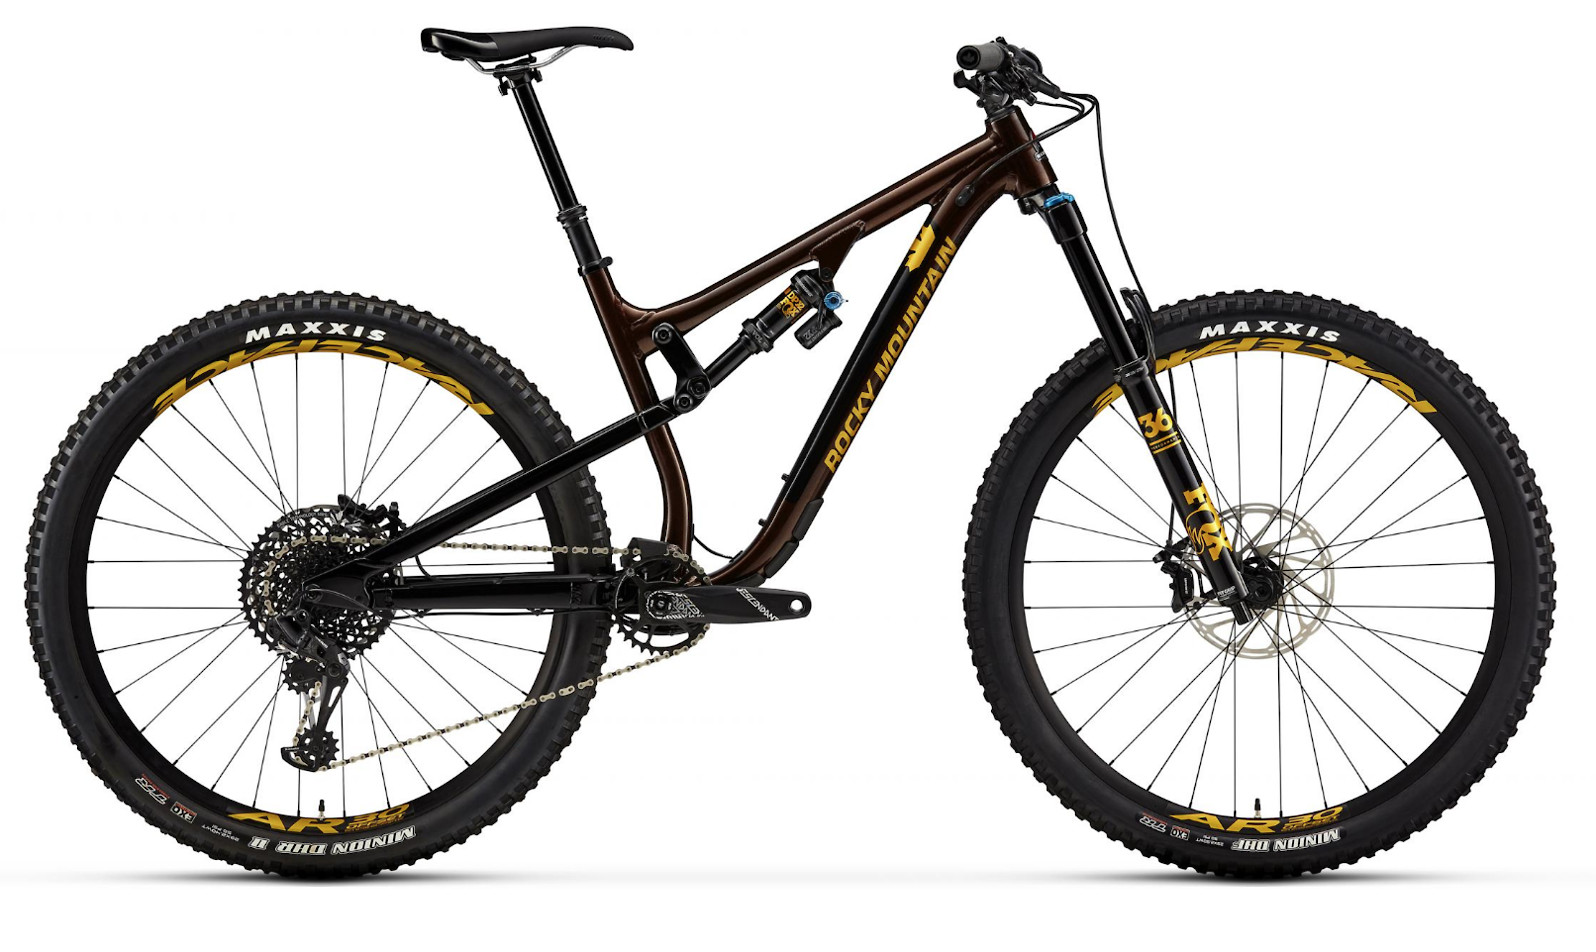 2019 Rocky Mountain Instinct Alloy 50 BC Edition - Brown and gold